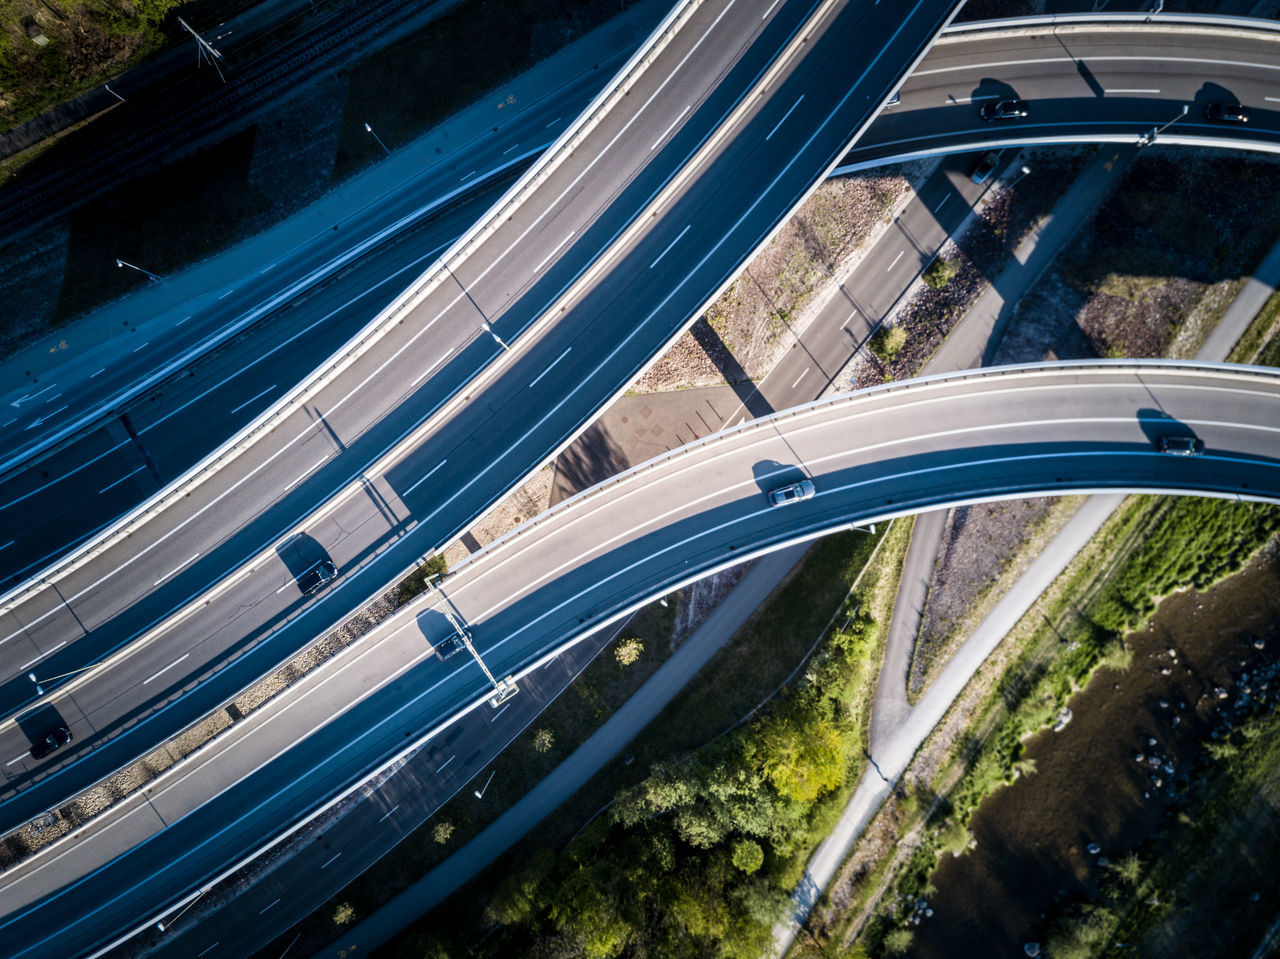 Aerial View Architecture Bridge - Man Made Structure Built Structure City Connection Day EyeEmNewHere High Angle View Highway Light Trail Long Exposure Motion Nature No People Outdoors Road Road Intersection Speed Street Transportation Water